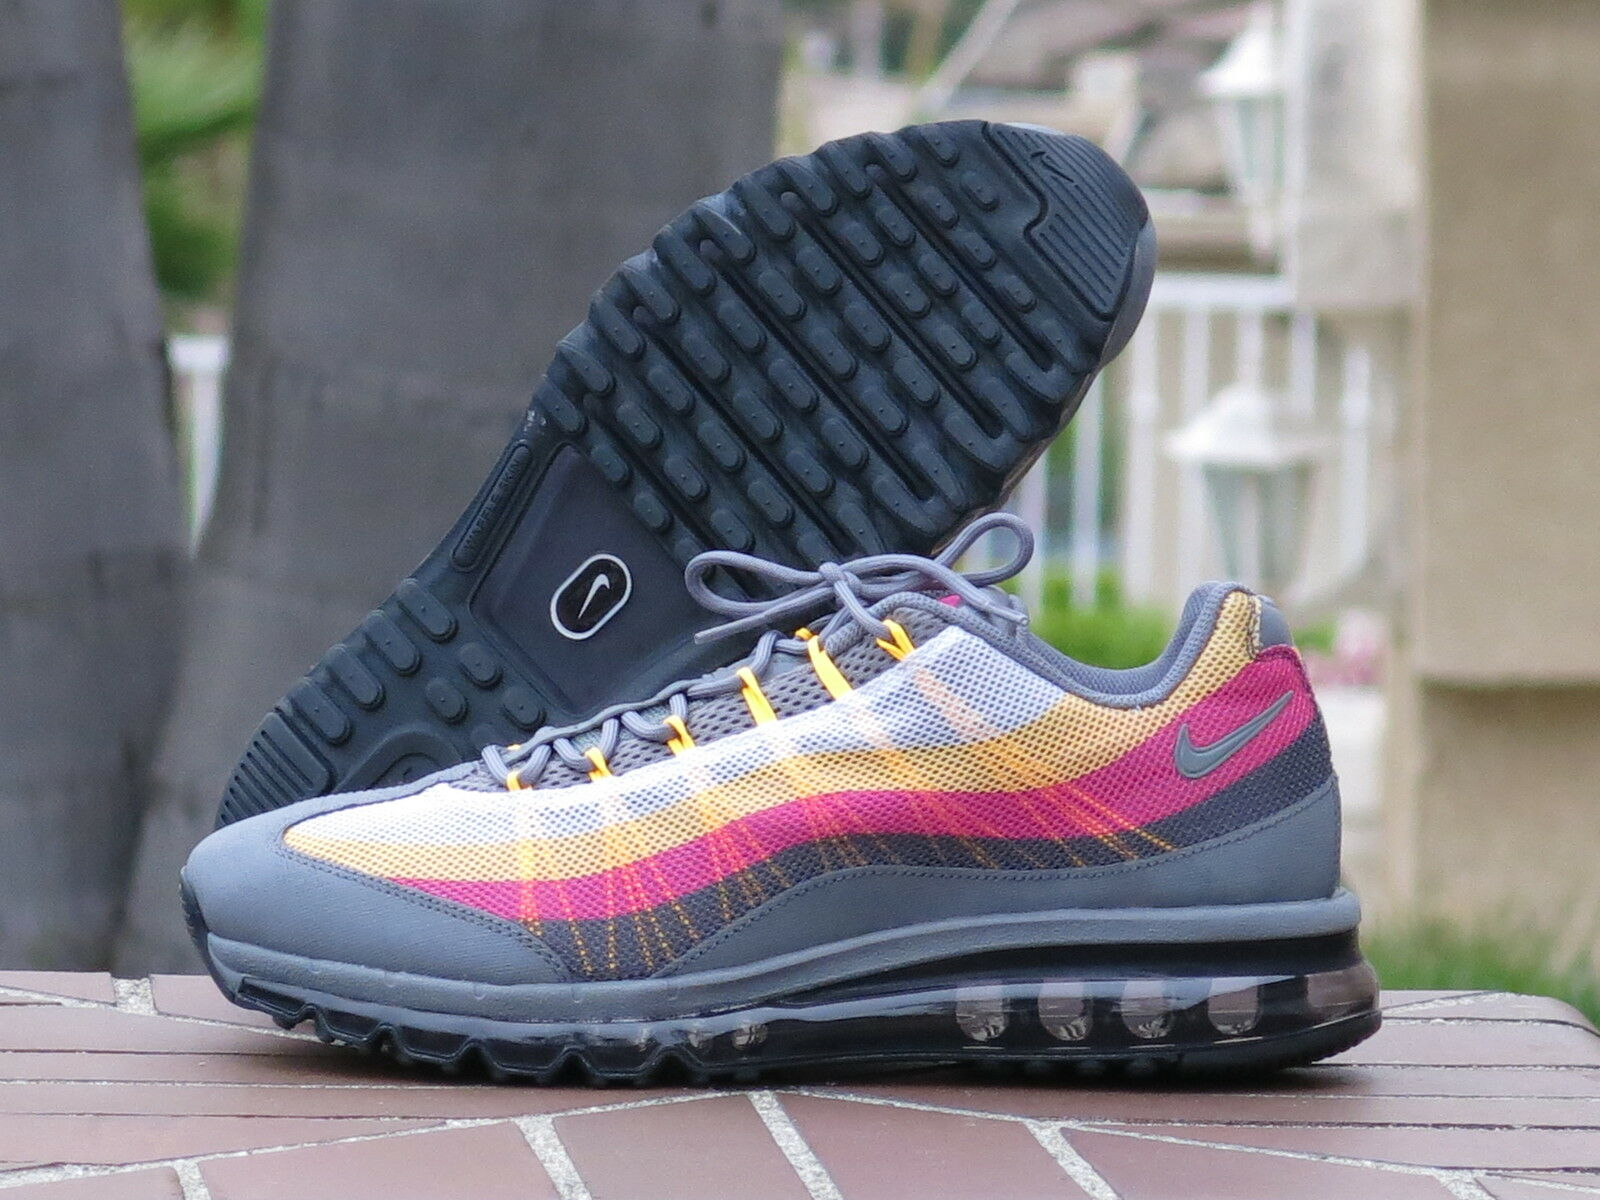 2013 Nike Air Max '95-2013 DYN FW Men's Running, Cross Training 599300-006 SZ 15